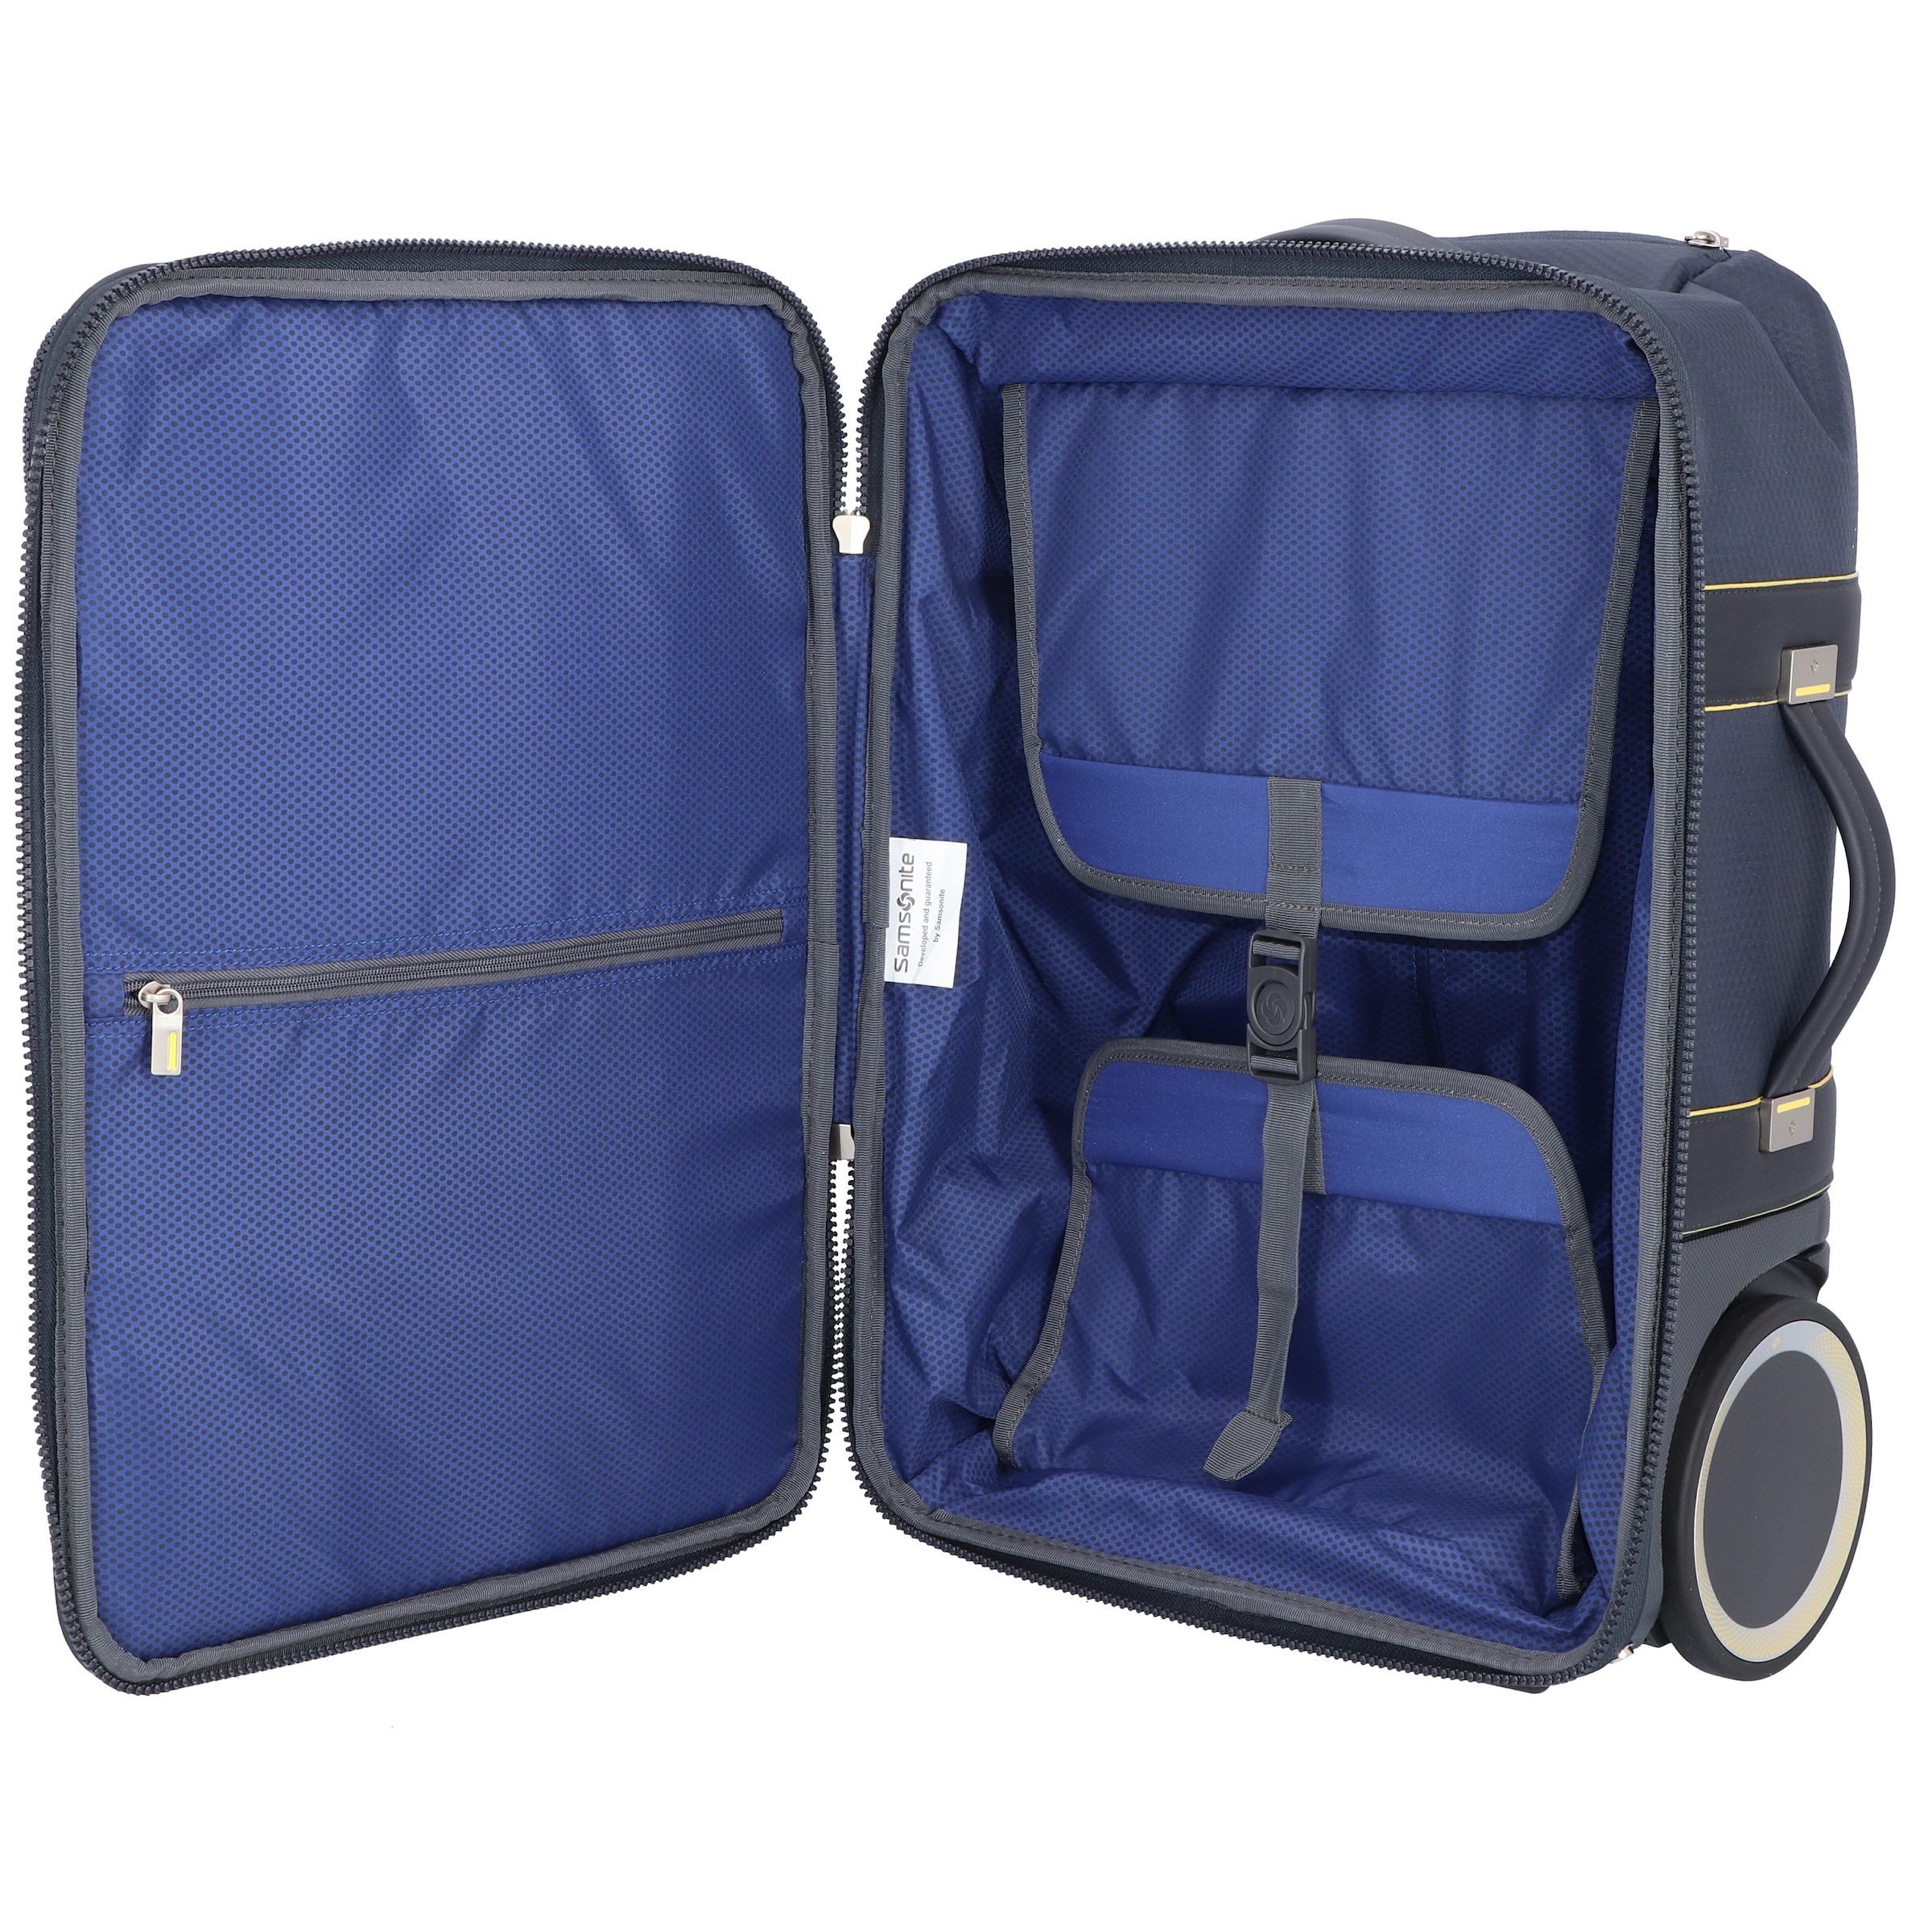 Laptopfach' Trolley 'zigo Blau rollen 55 In Samsonite Cm 2 Kabinentrolley H2WDYE9I